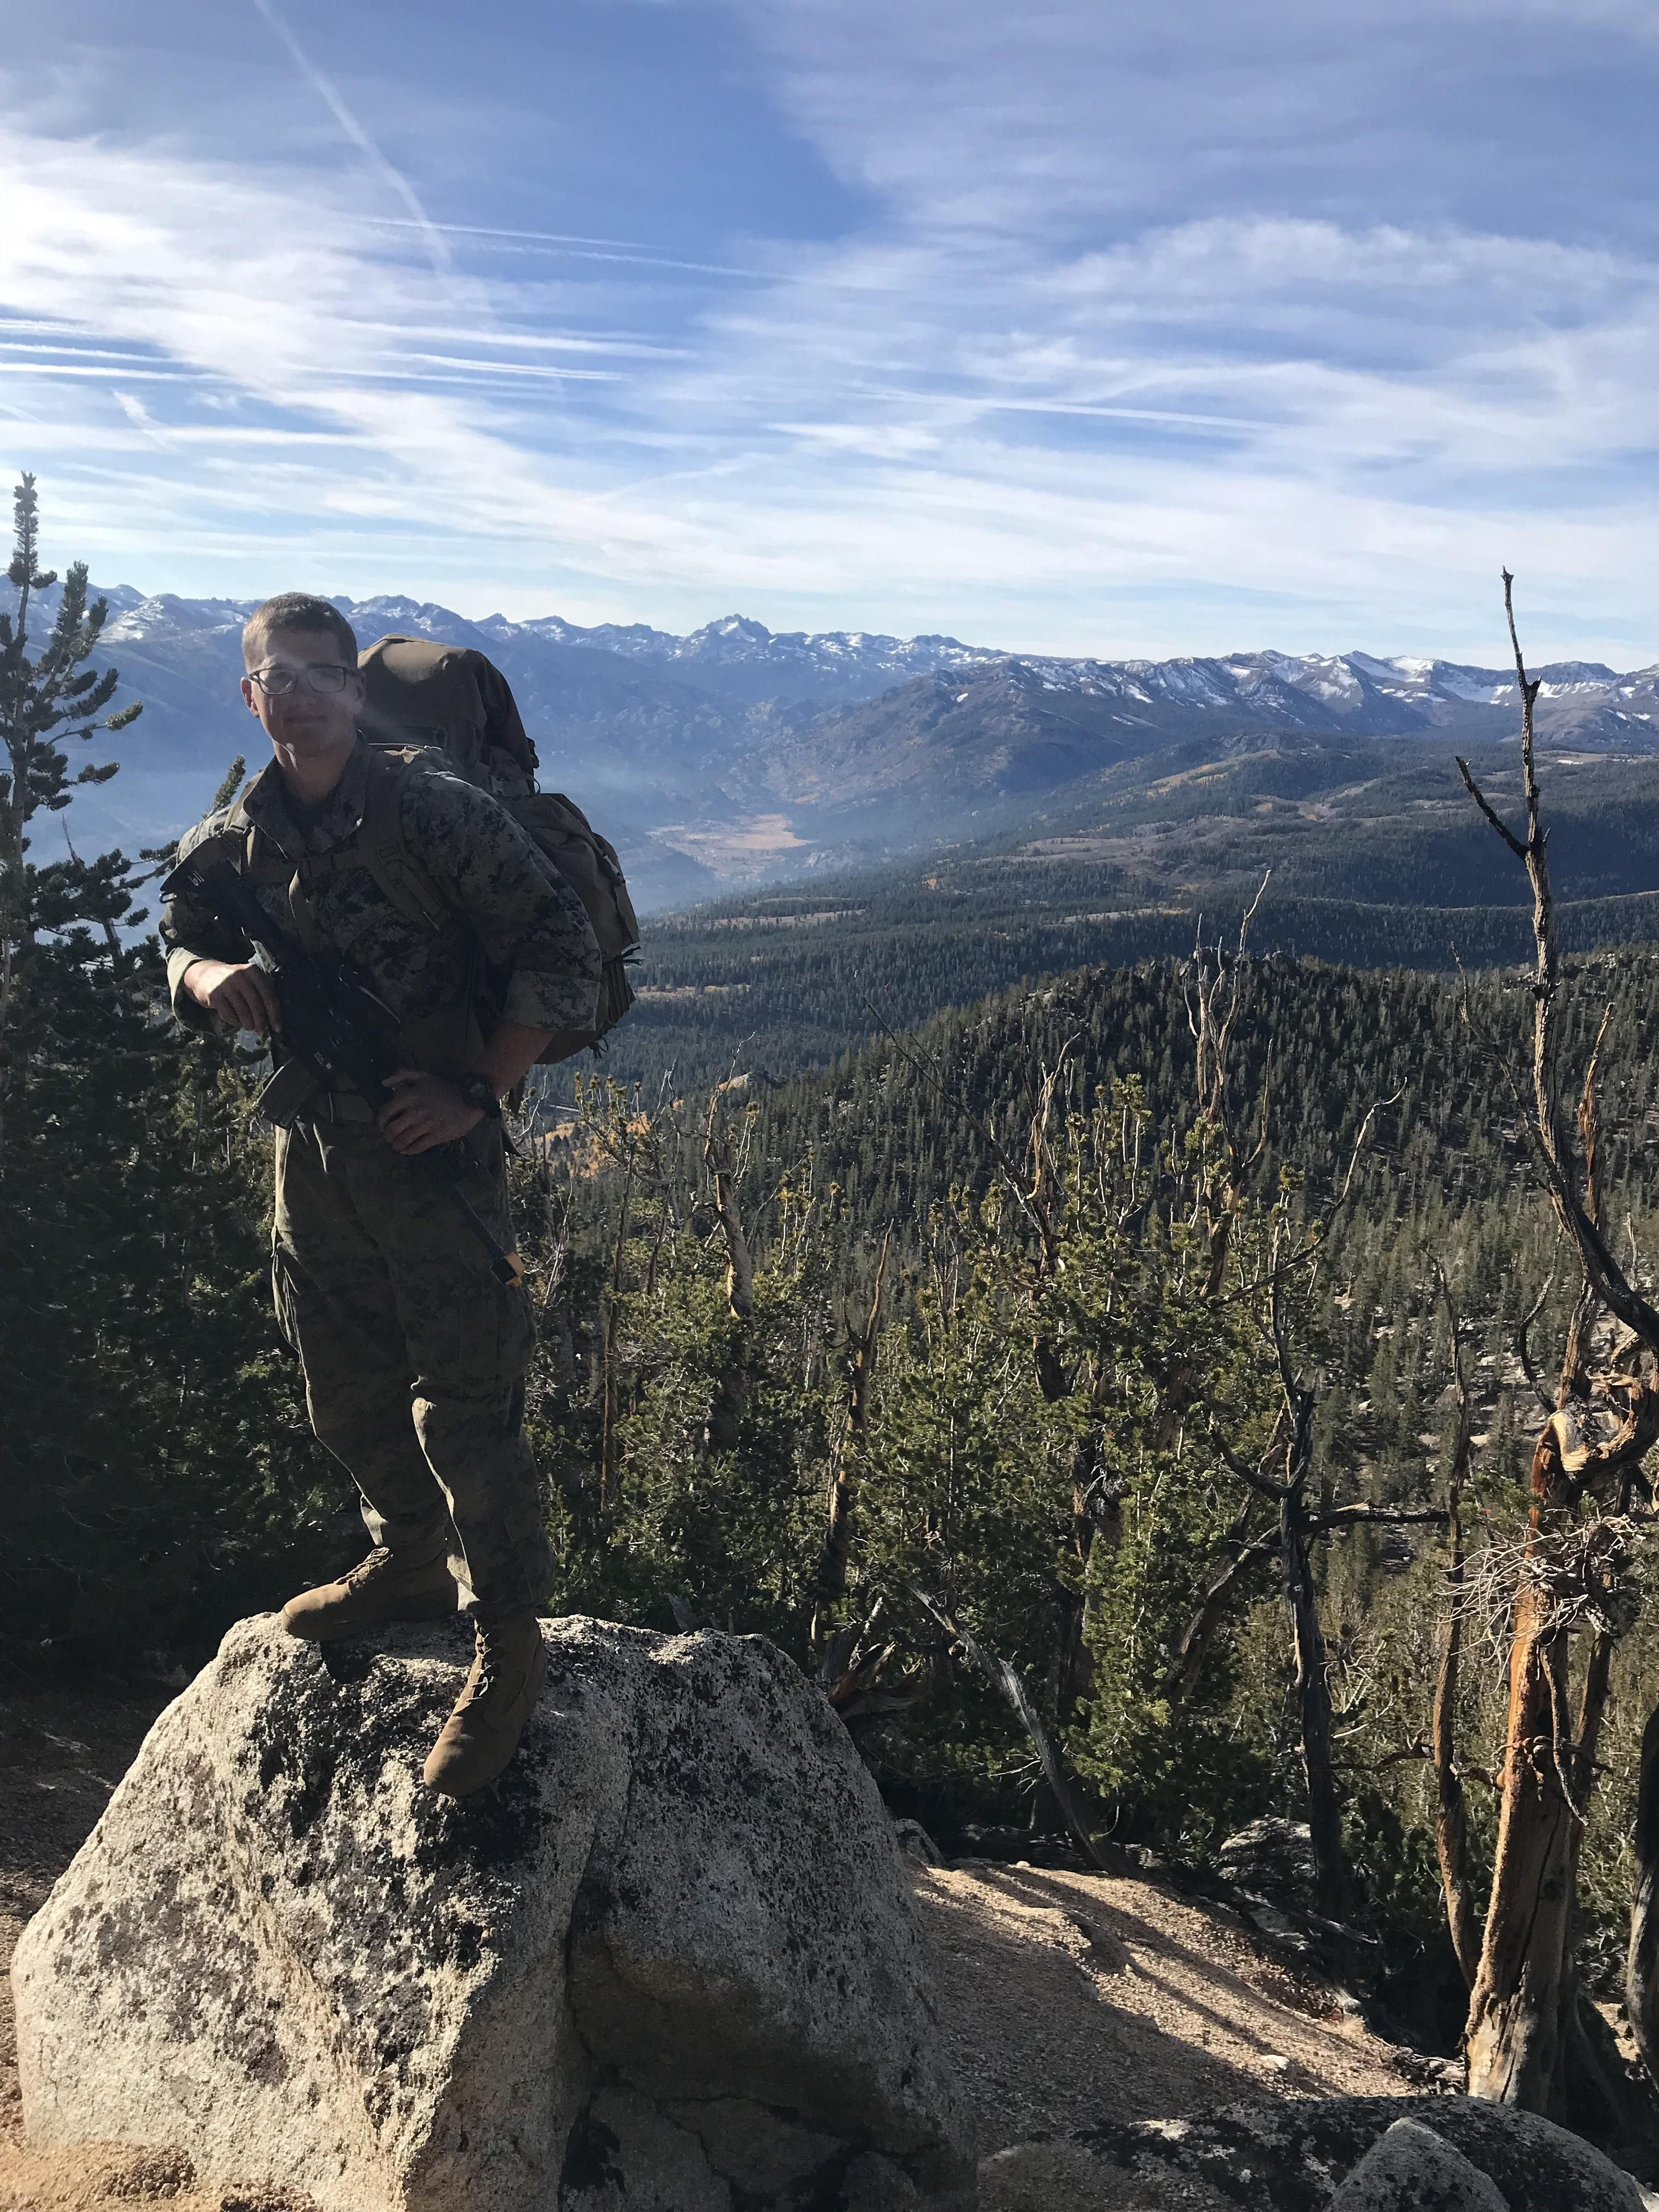 Amazing View After A 6hr Hike In The Sierra Nevada Mountain Range Hiking Camping Outdoors Nature Travel Back Sierra Nevada Mountains Sierra Nevada Hiking